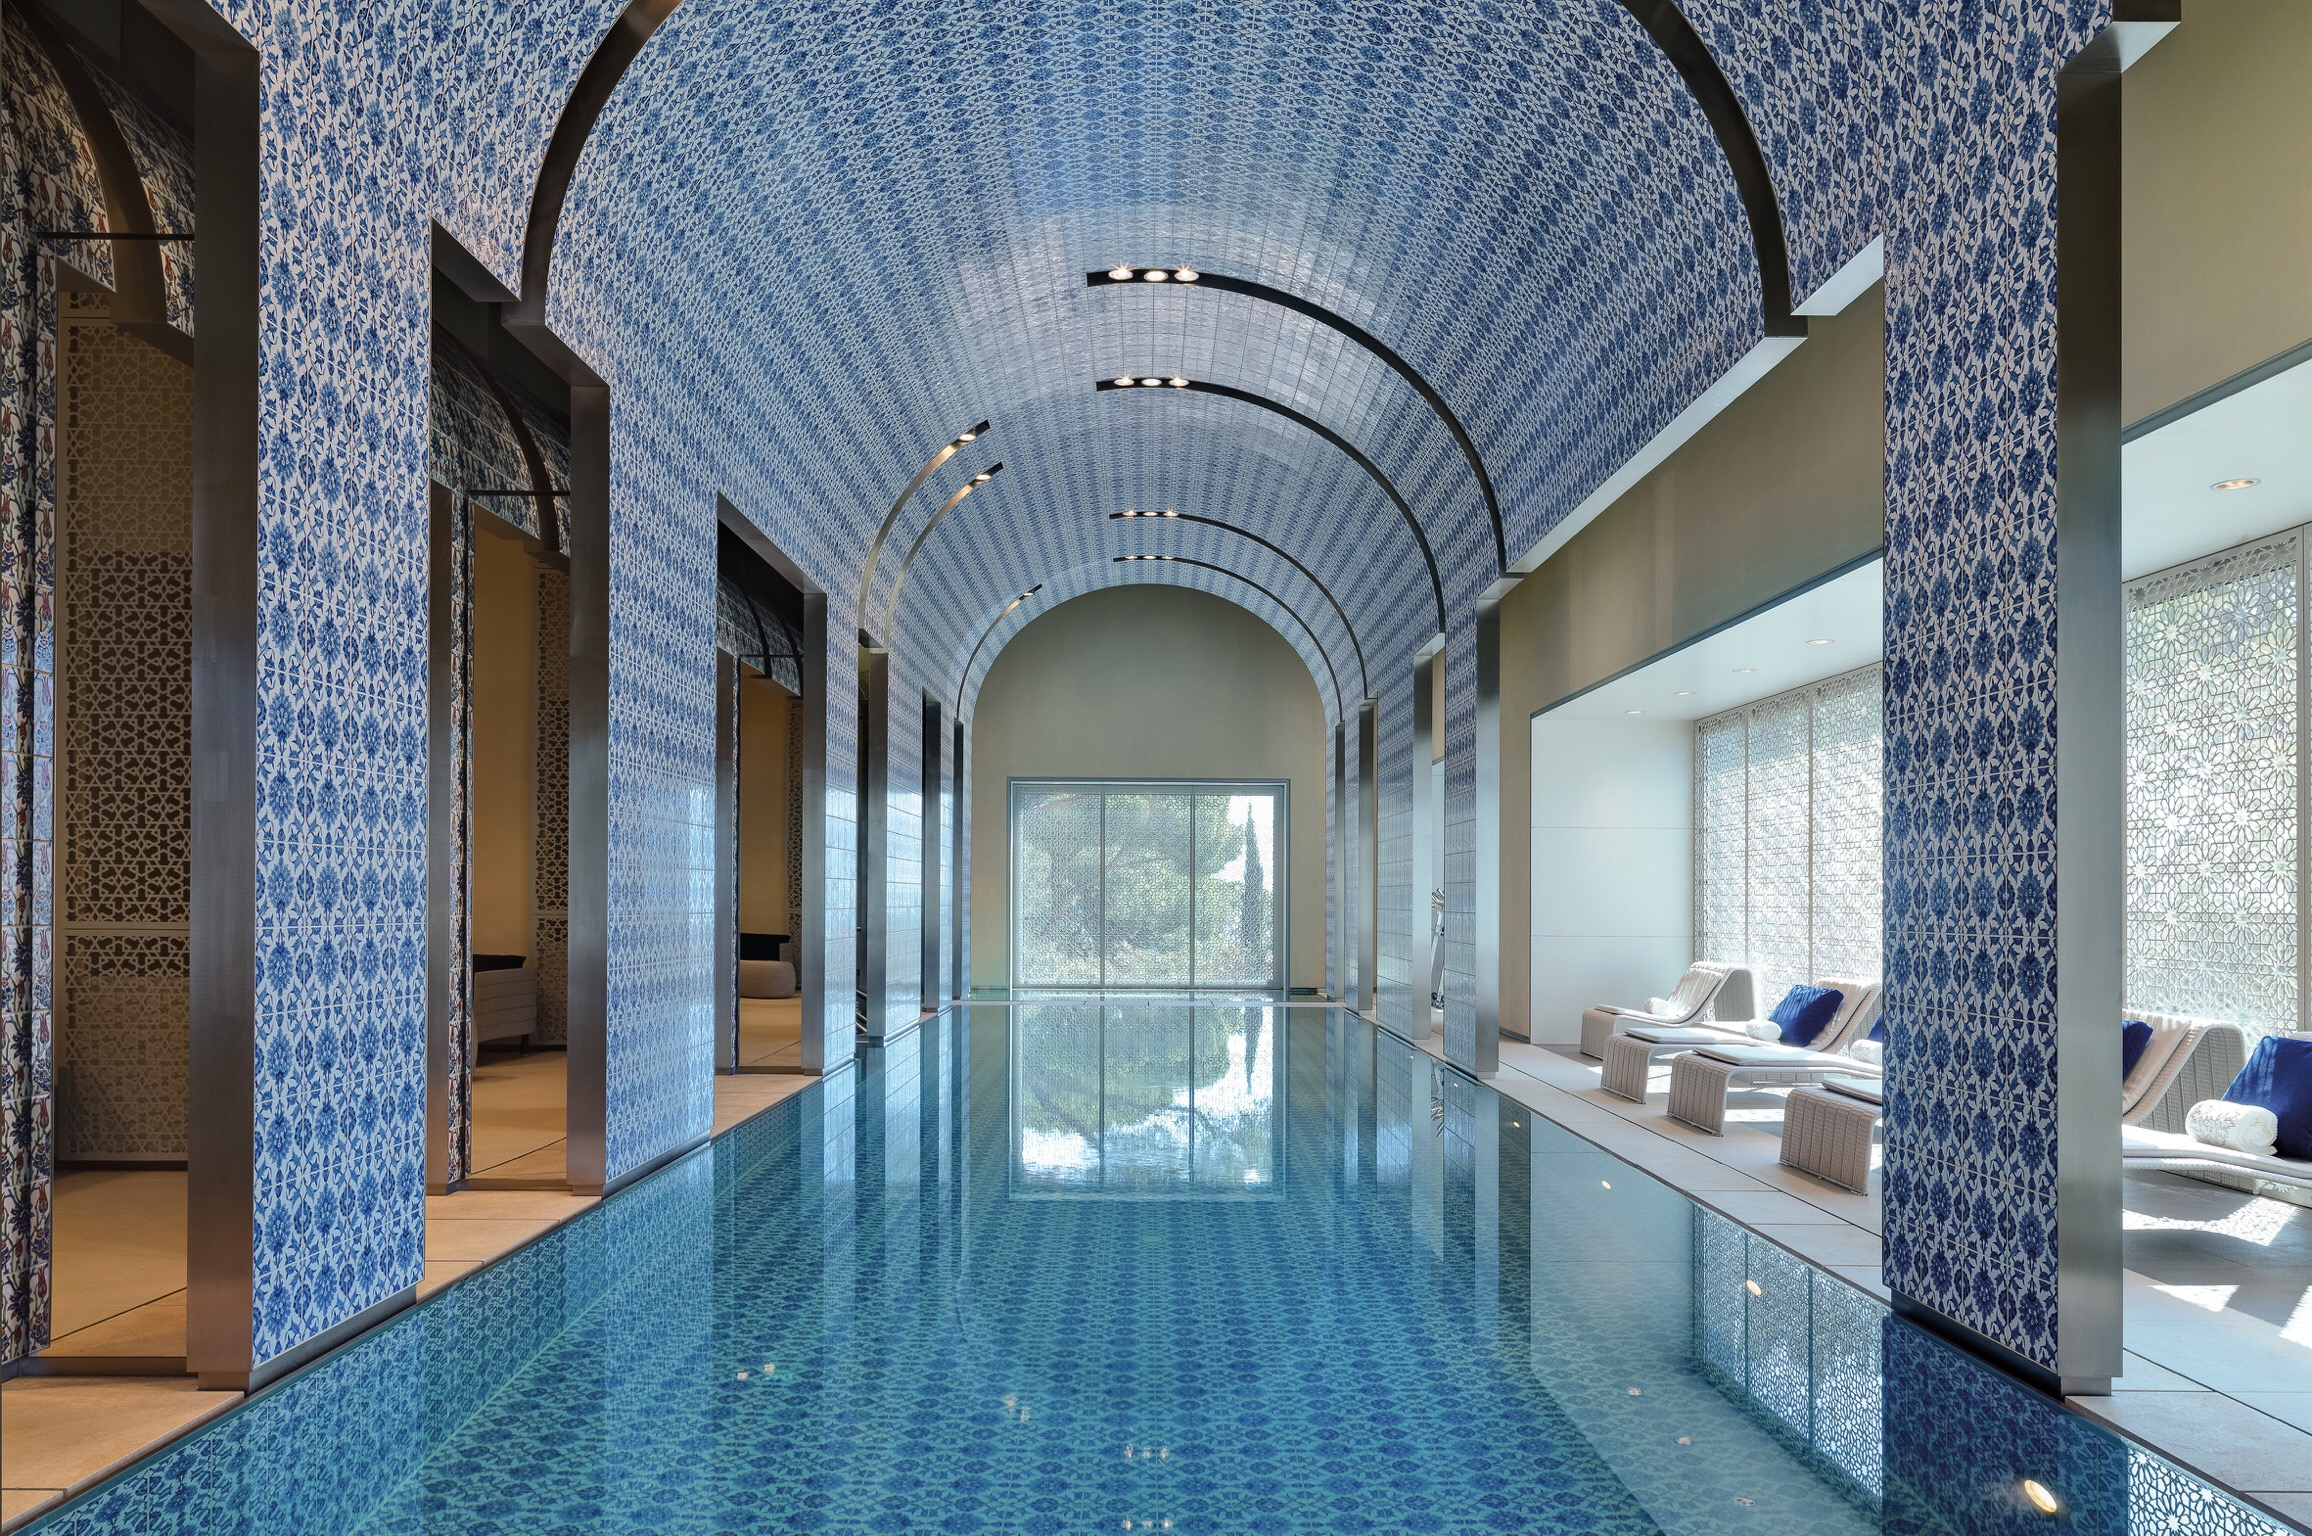 L'Espace Al Bustan / Beit Mery, Lebanon - 2015 - 2017 The spa is the combination of a contemporary and a traditional approach to wellness. Its unique architecture, is a beautiful blend of Levantine tiling and stonework with graceful Arabesques and contemporary Mashrabiyas. Its concept is based on reviving and reinventing the Hammam experience and offering the the best holistic treatments and activities available today.Role in project: Consultant, Concept Development, Financial Feasibility, Menu & Services Development, Financial Planning, Sales & Marketing Strategy Development, Opening Management Support, Human Resources Assistance.